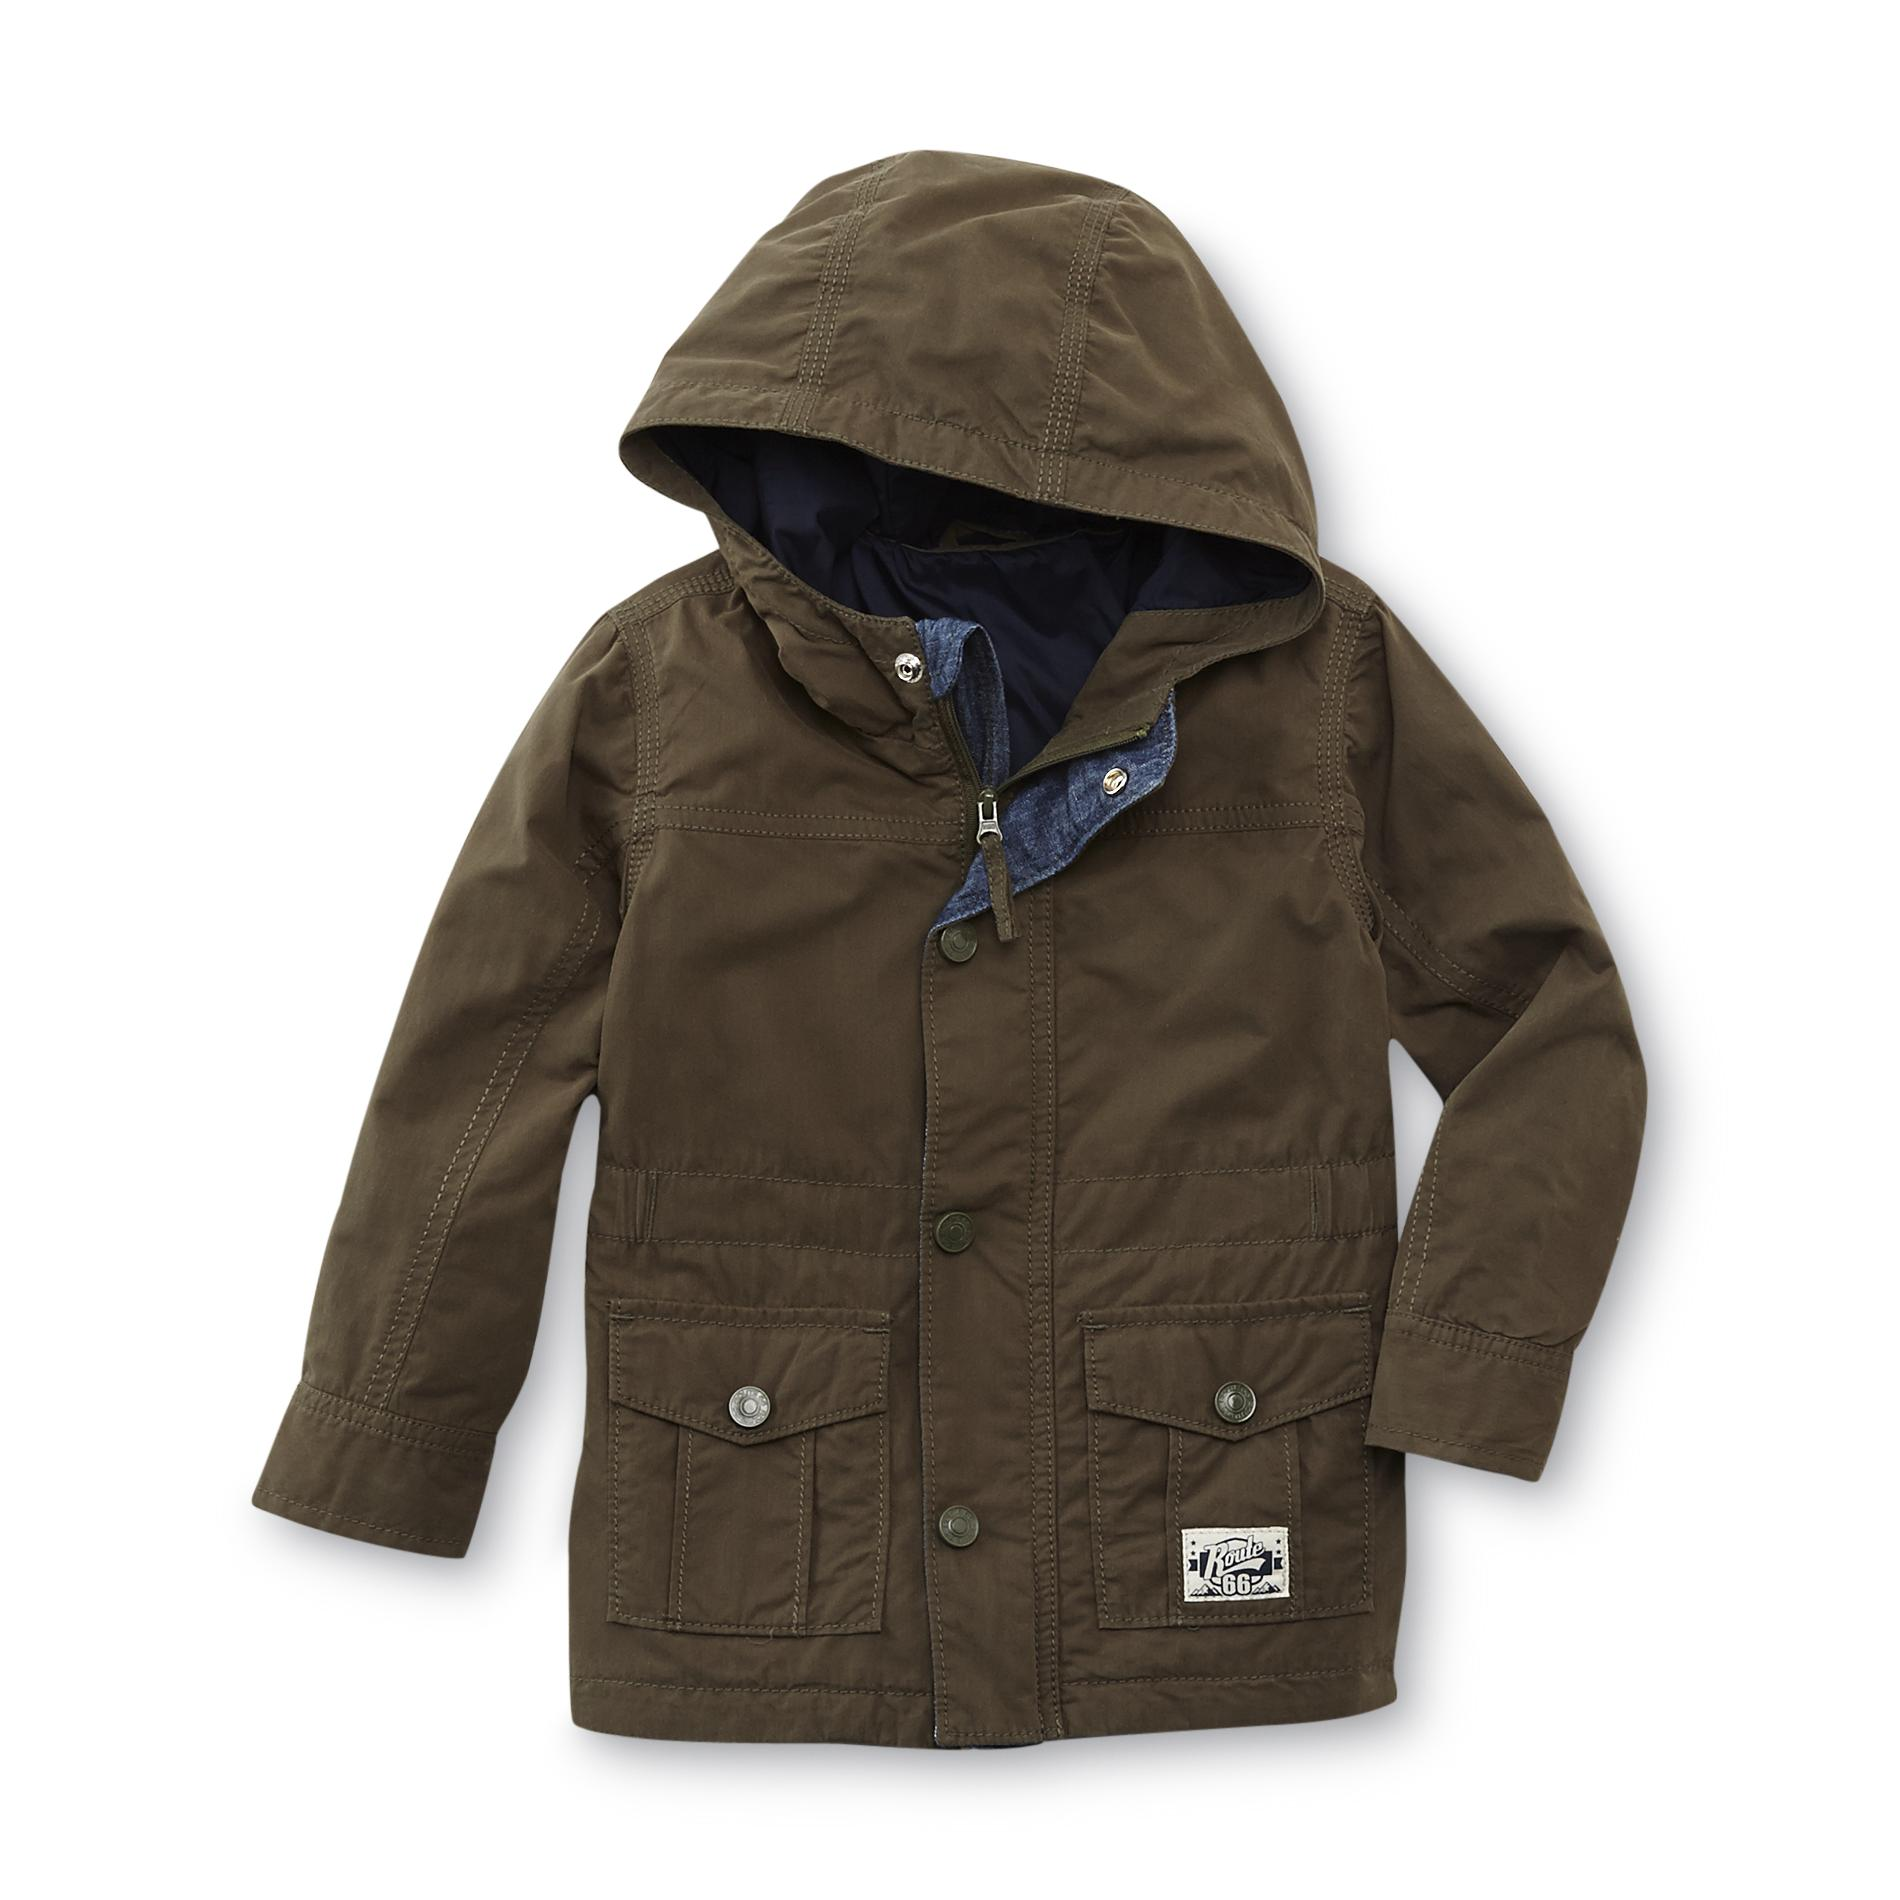 Route 66 Baby Toddler Boy's Hooded Jacket